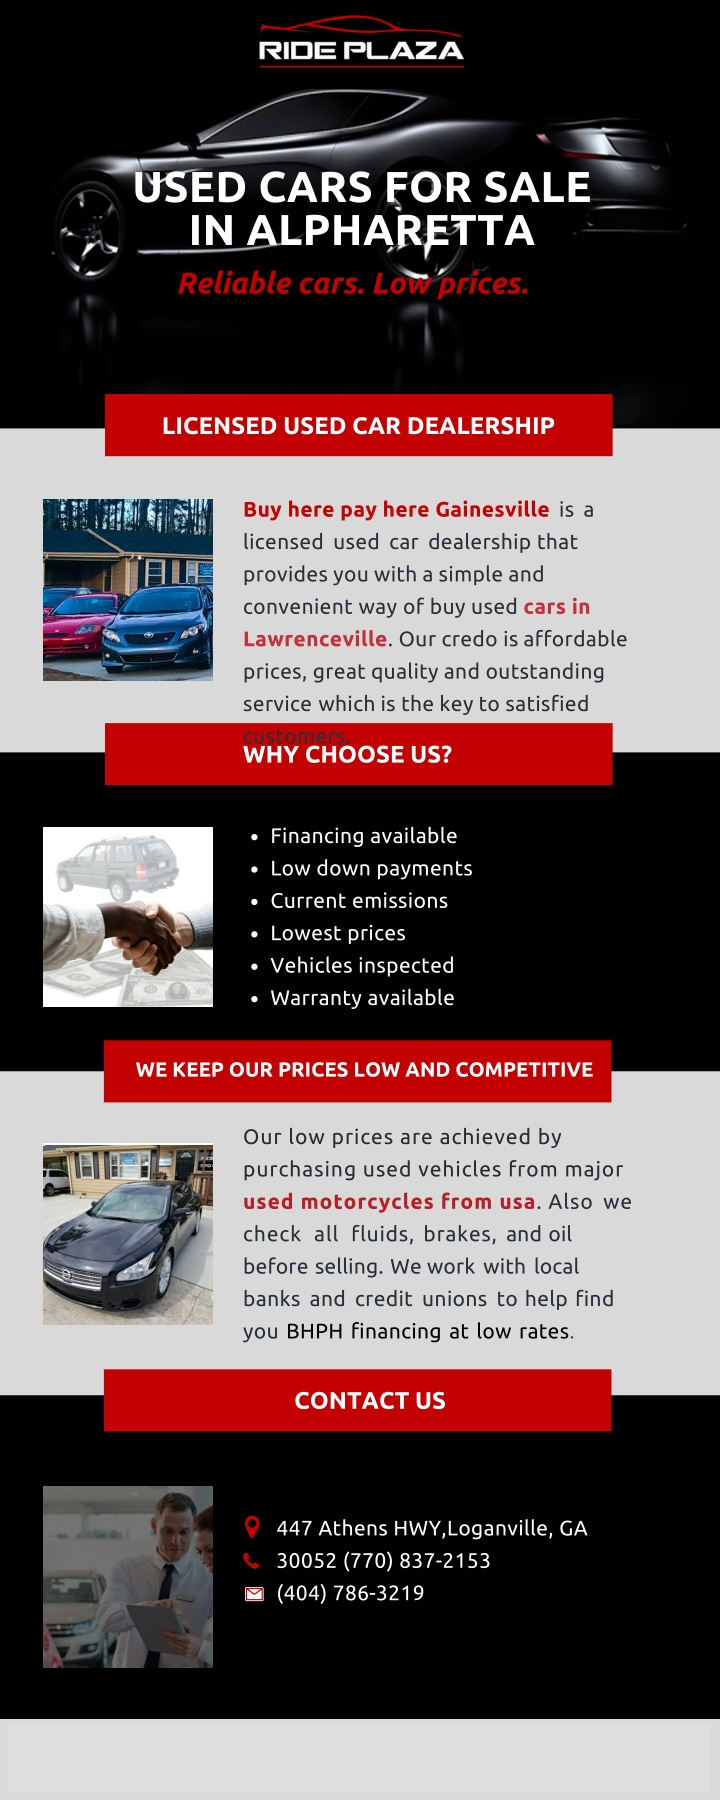 used cars for sale in alpharetta r eliable cars n.